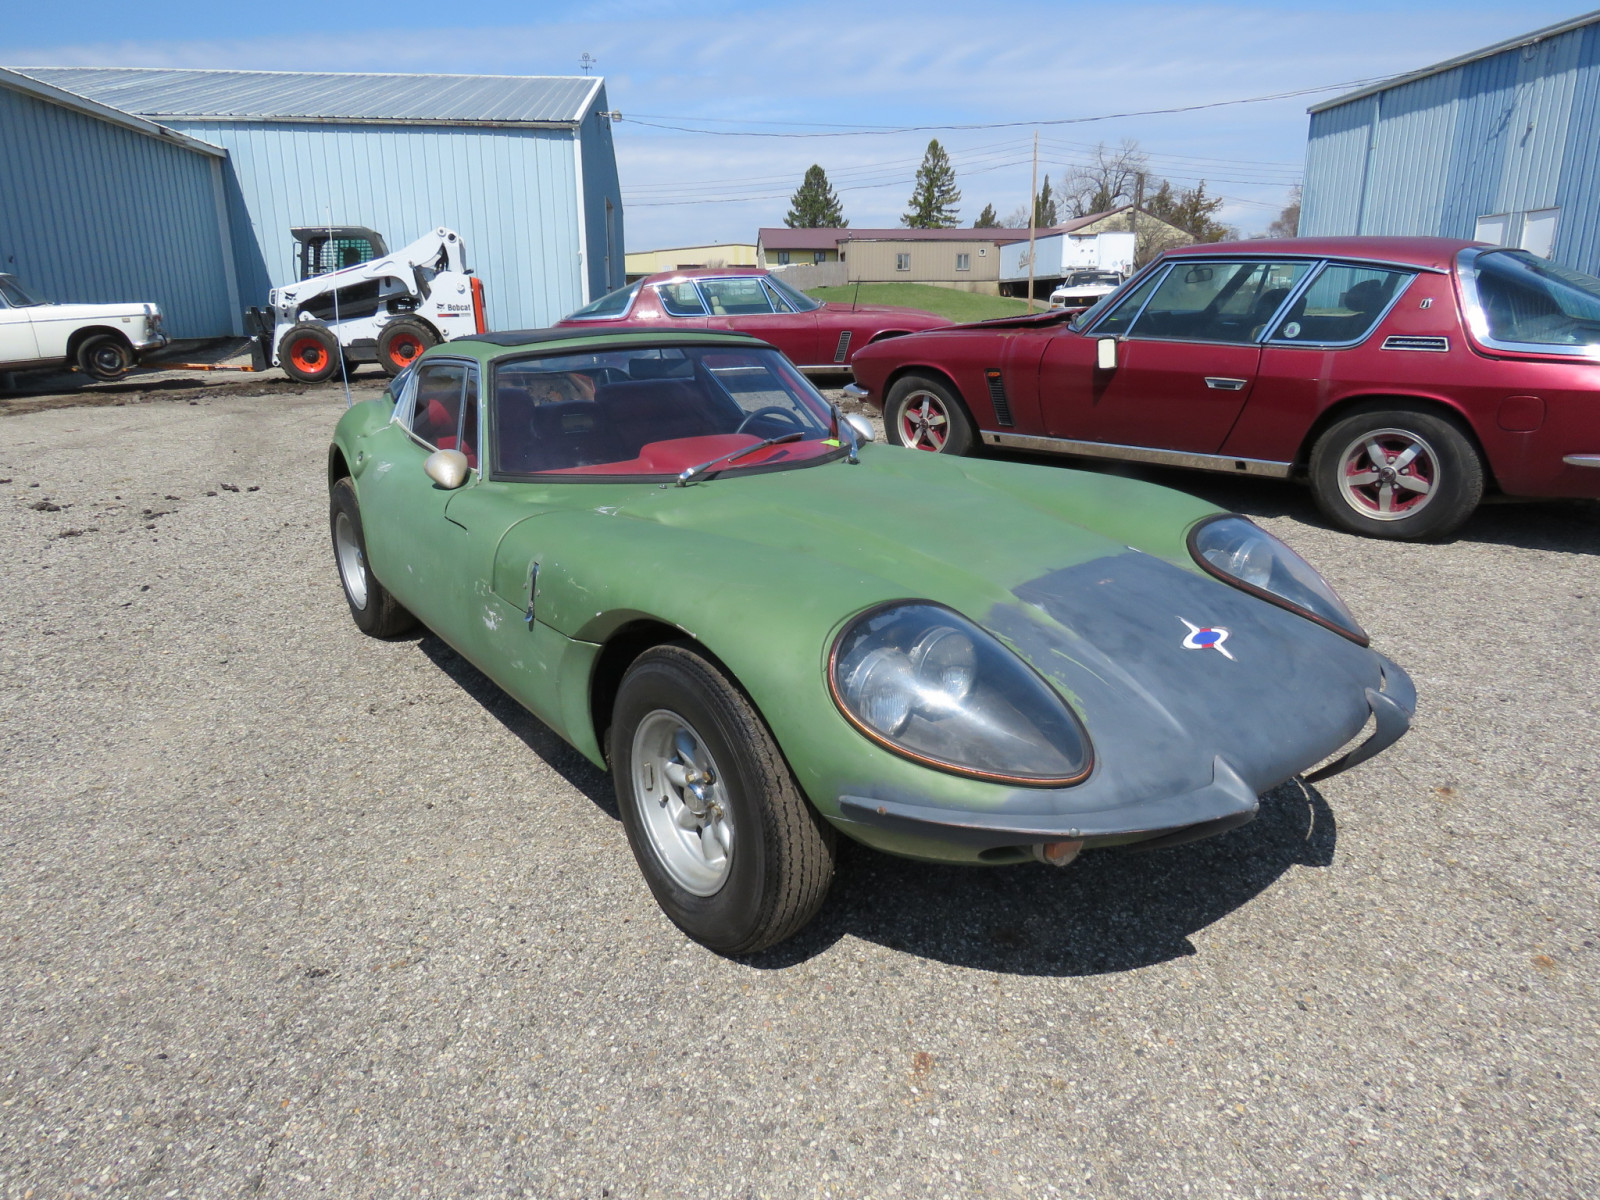 1969 Marcos Model 1600 Coupe - Image 18